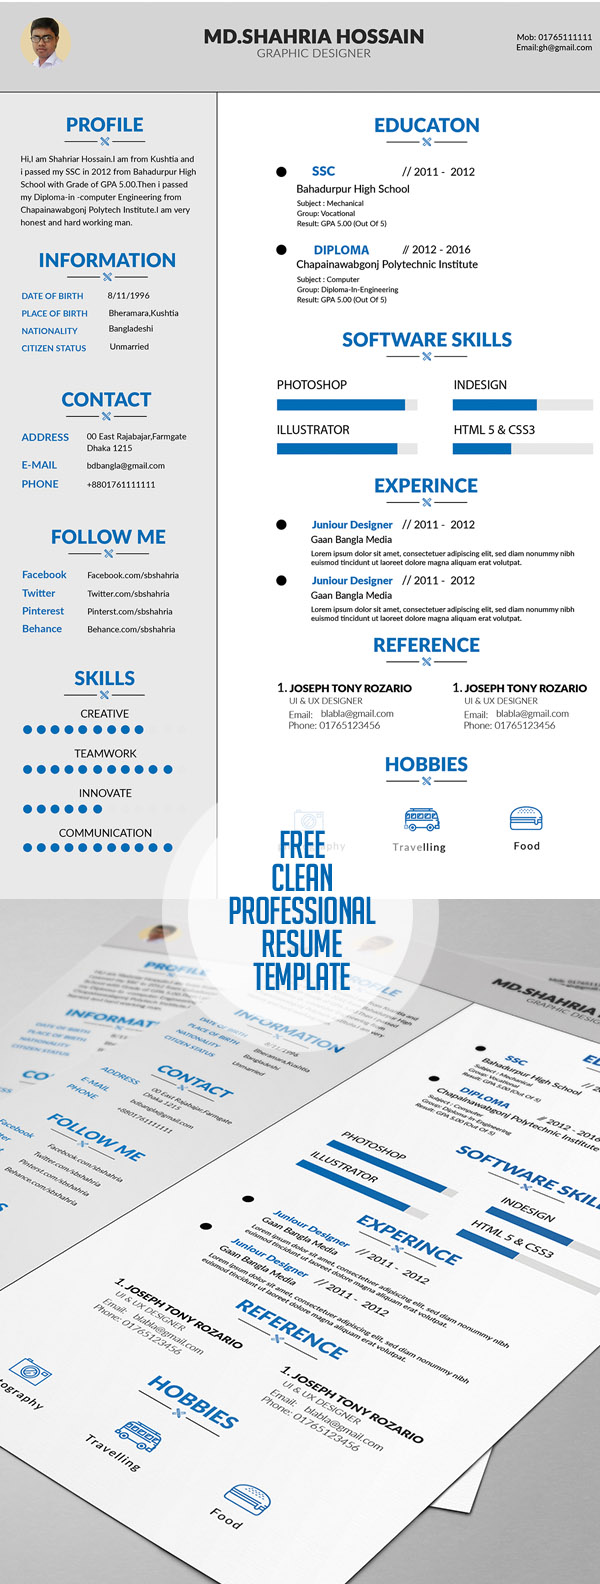 free clean proffesional resume design - Resume With Picture Template